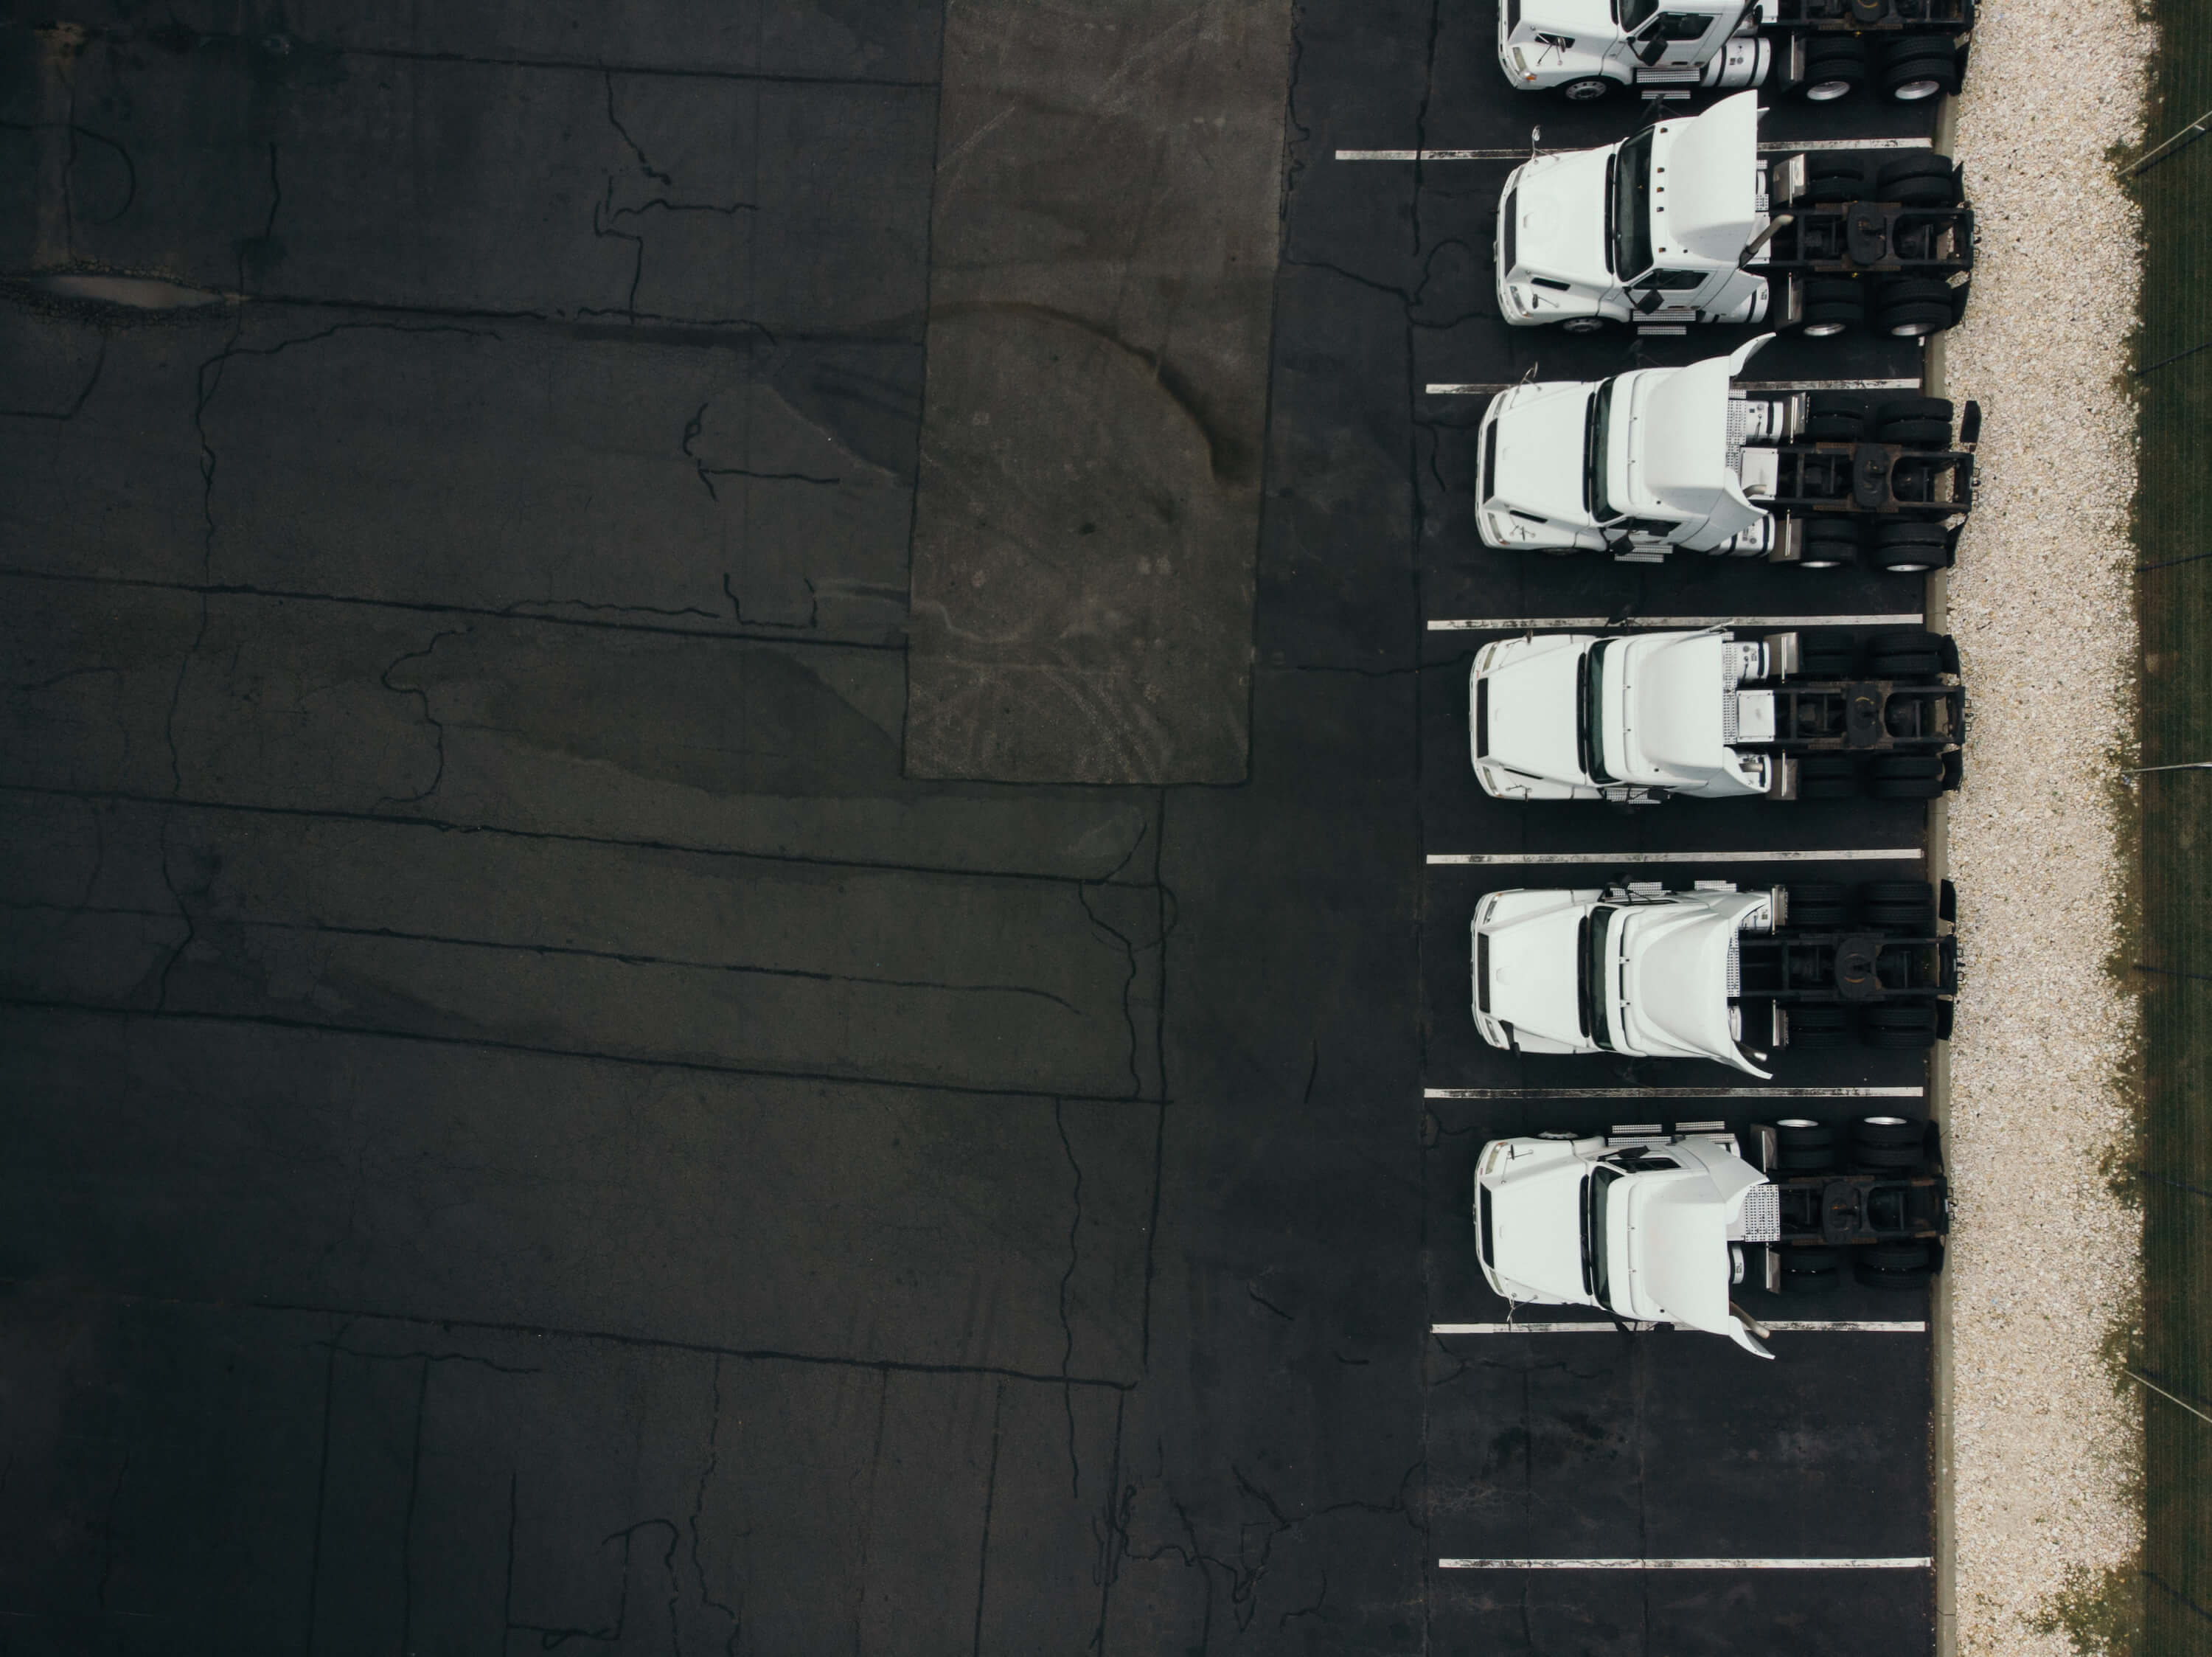 aerial view of heavy duty trucks